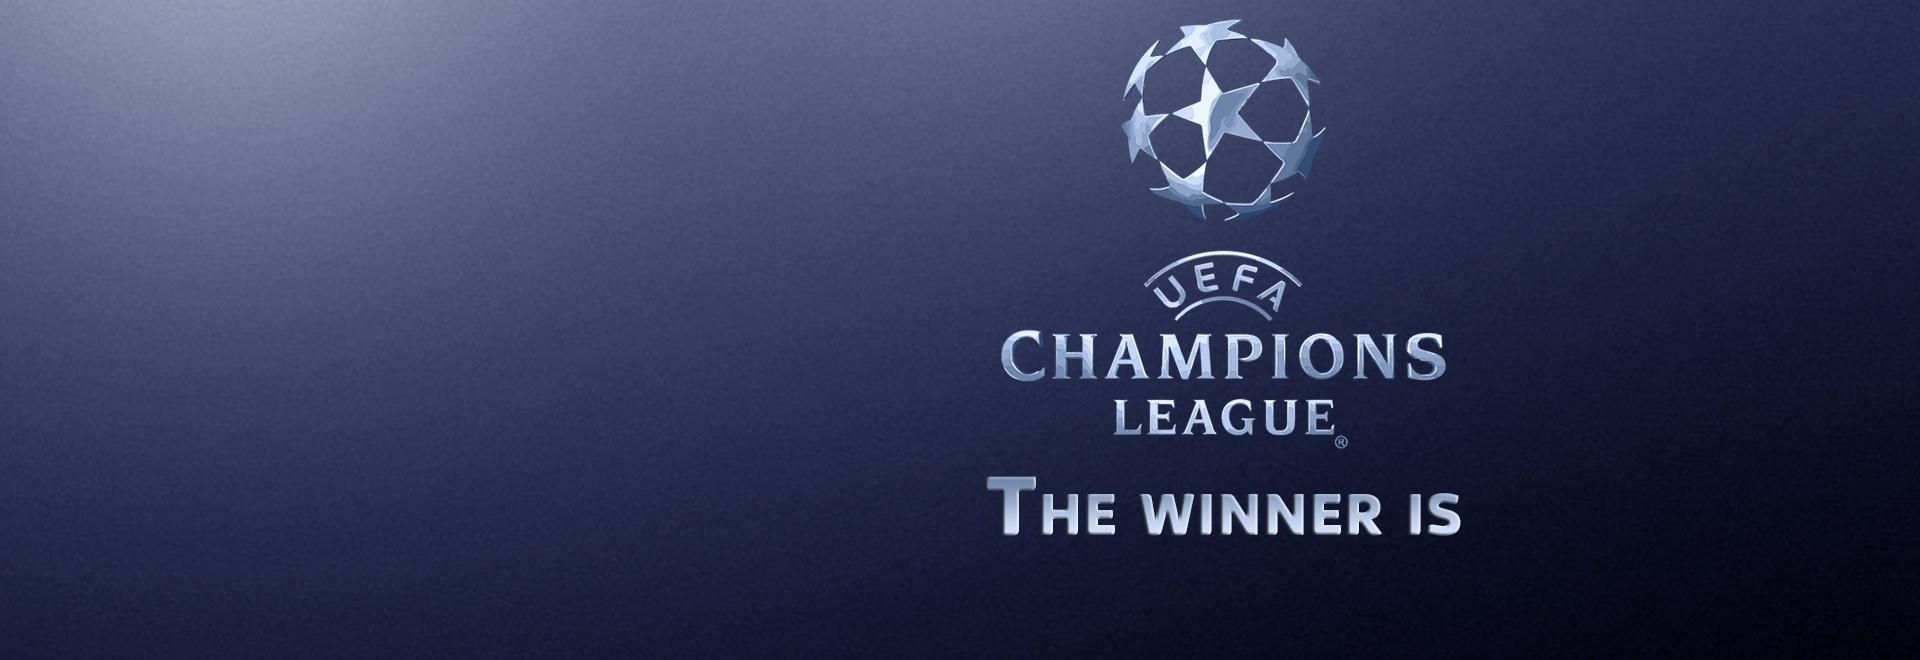 Champions League: The winner is